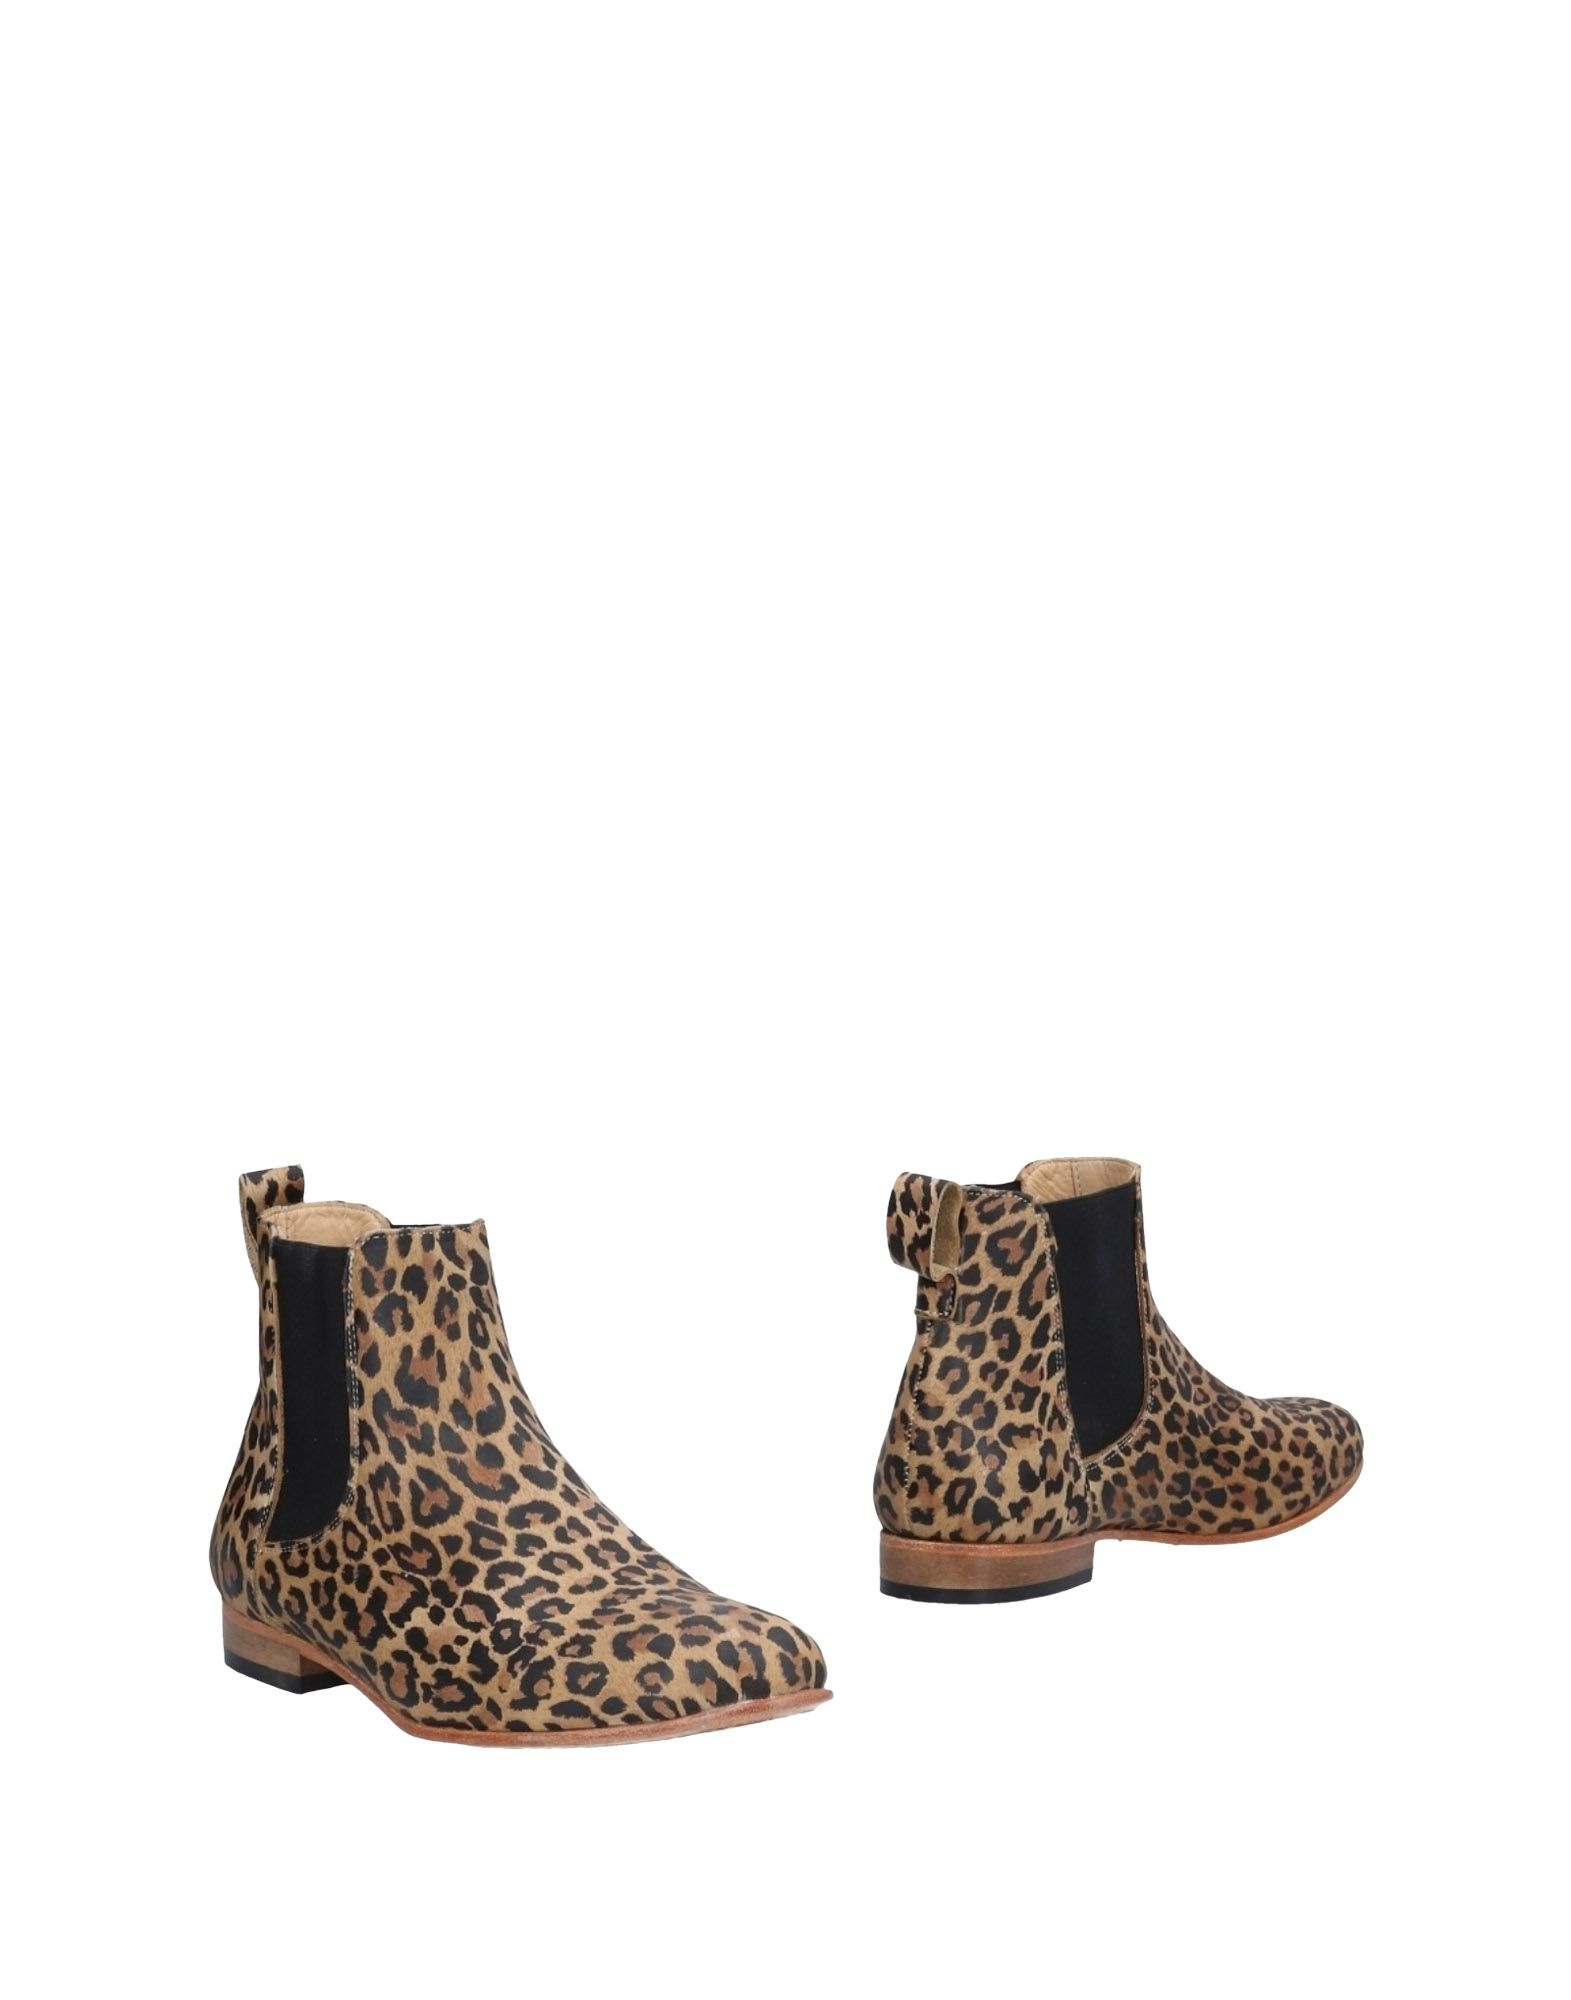 DIEPPA RESTREPO Ankle Boot in Sand